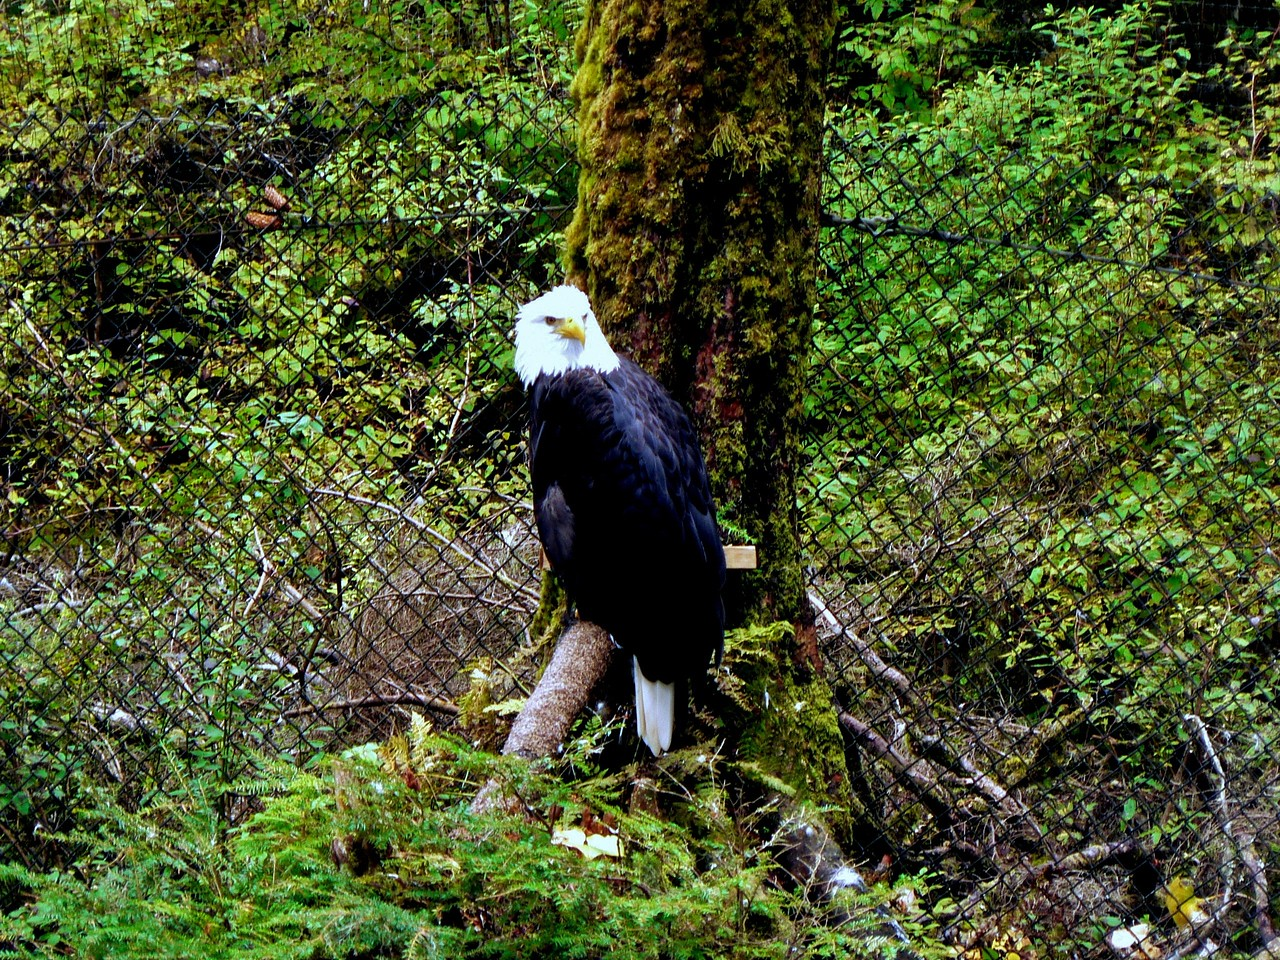 One of the resident eagles.